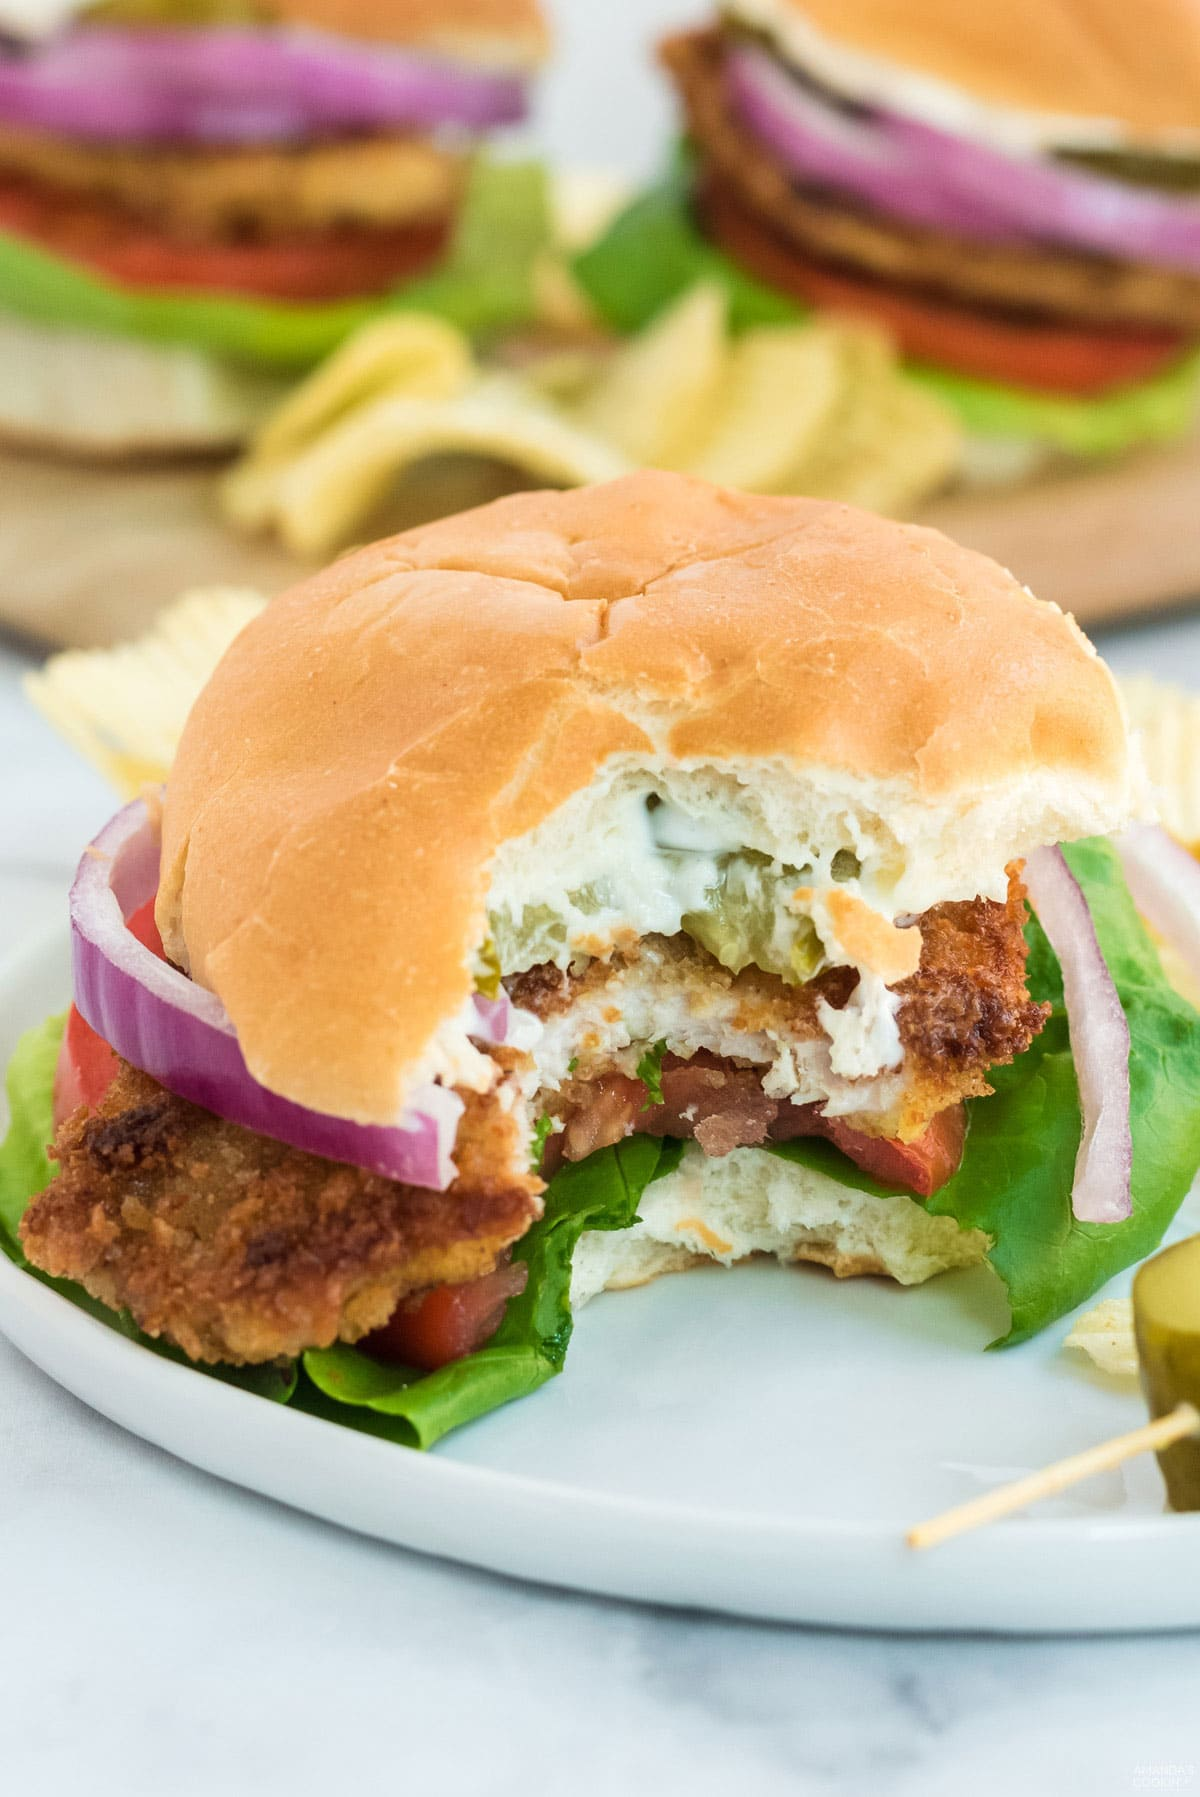 pork tenderloin sandwich with bite out of it